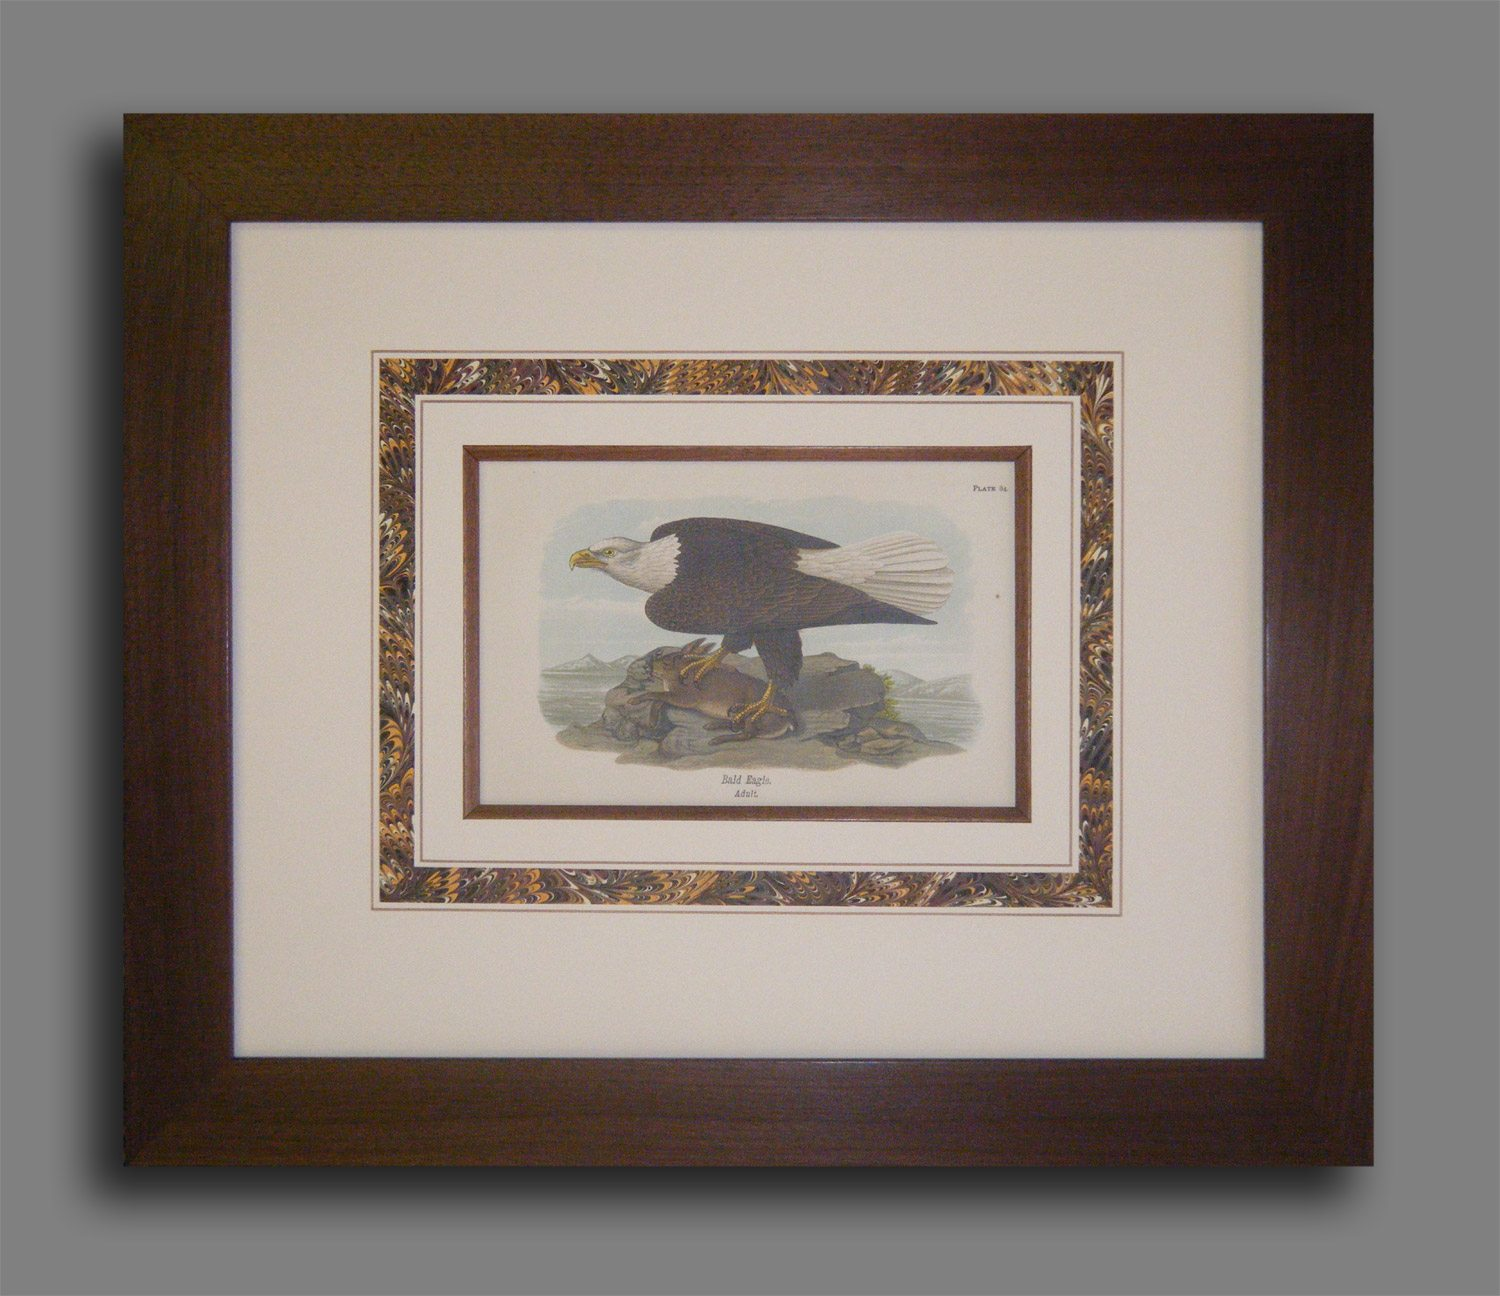 BH Warren Bird Print - 1889